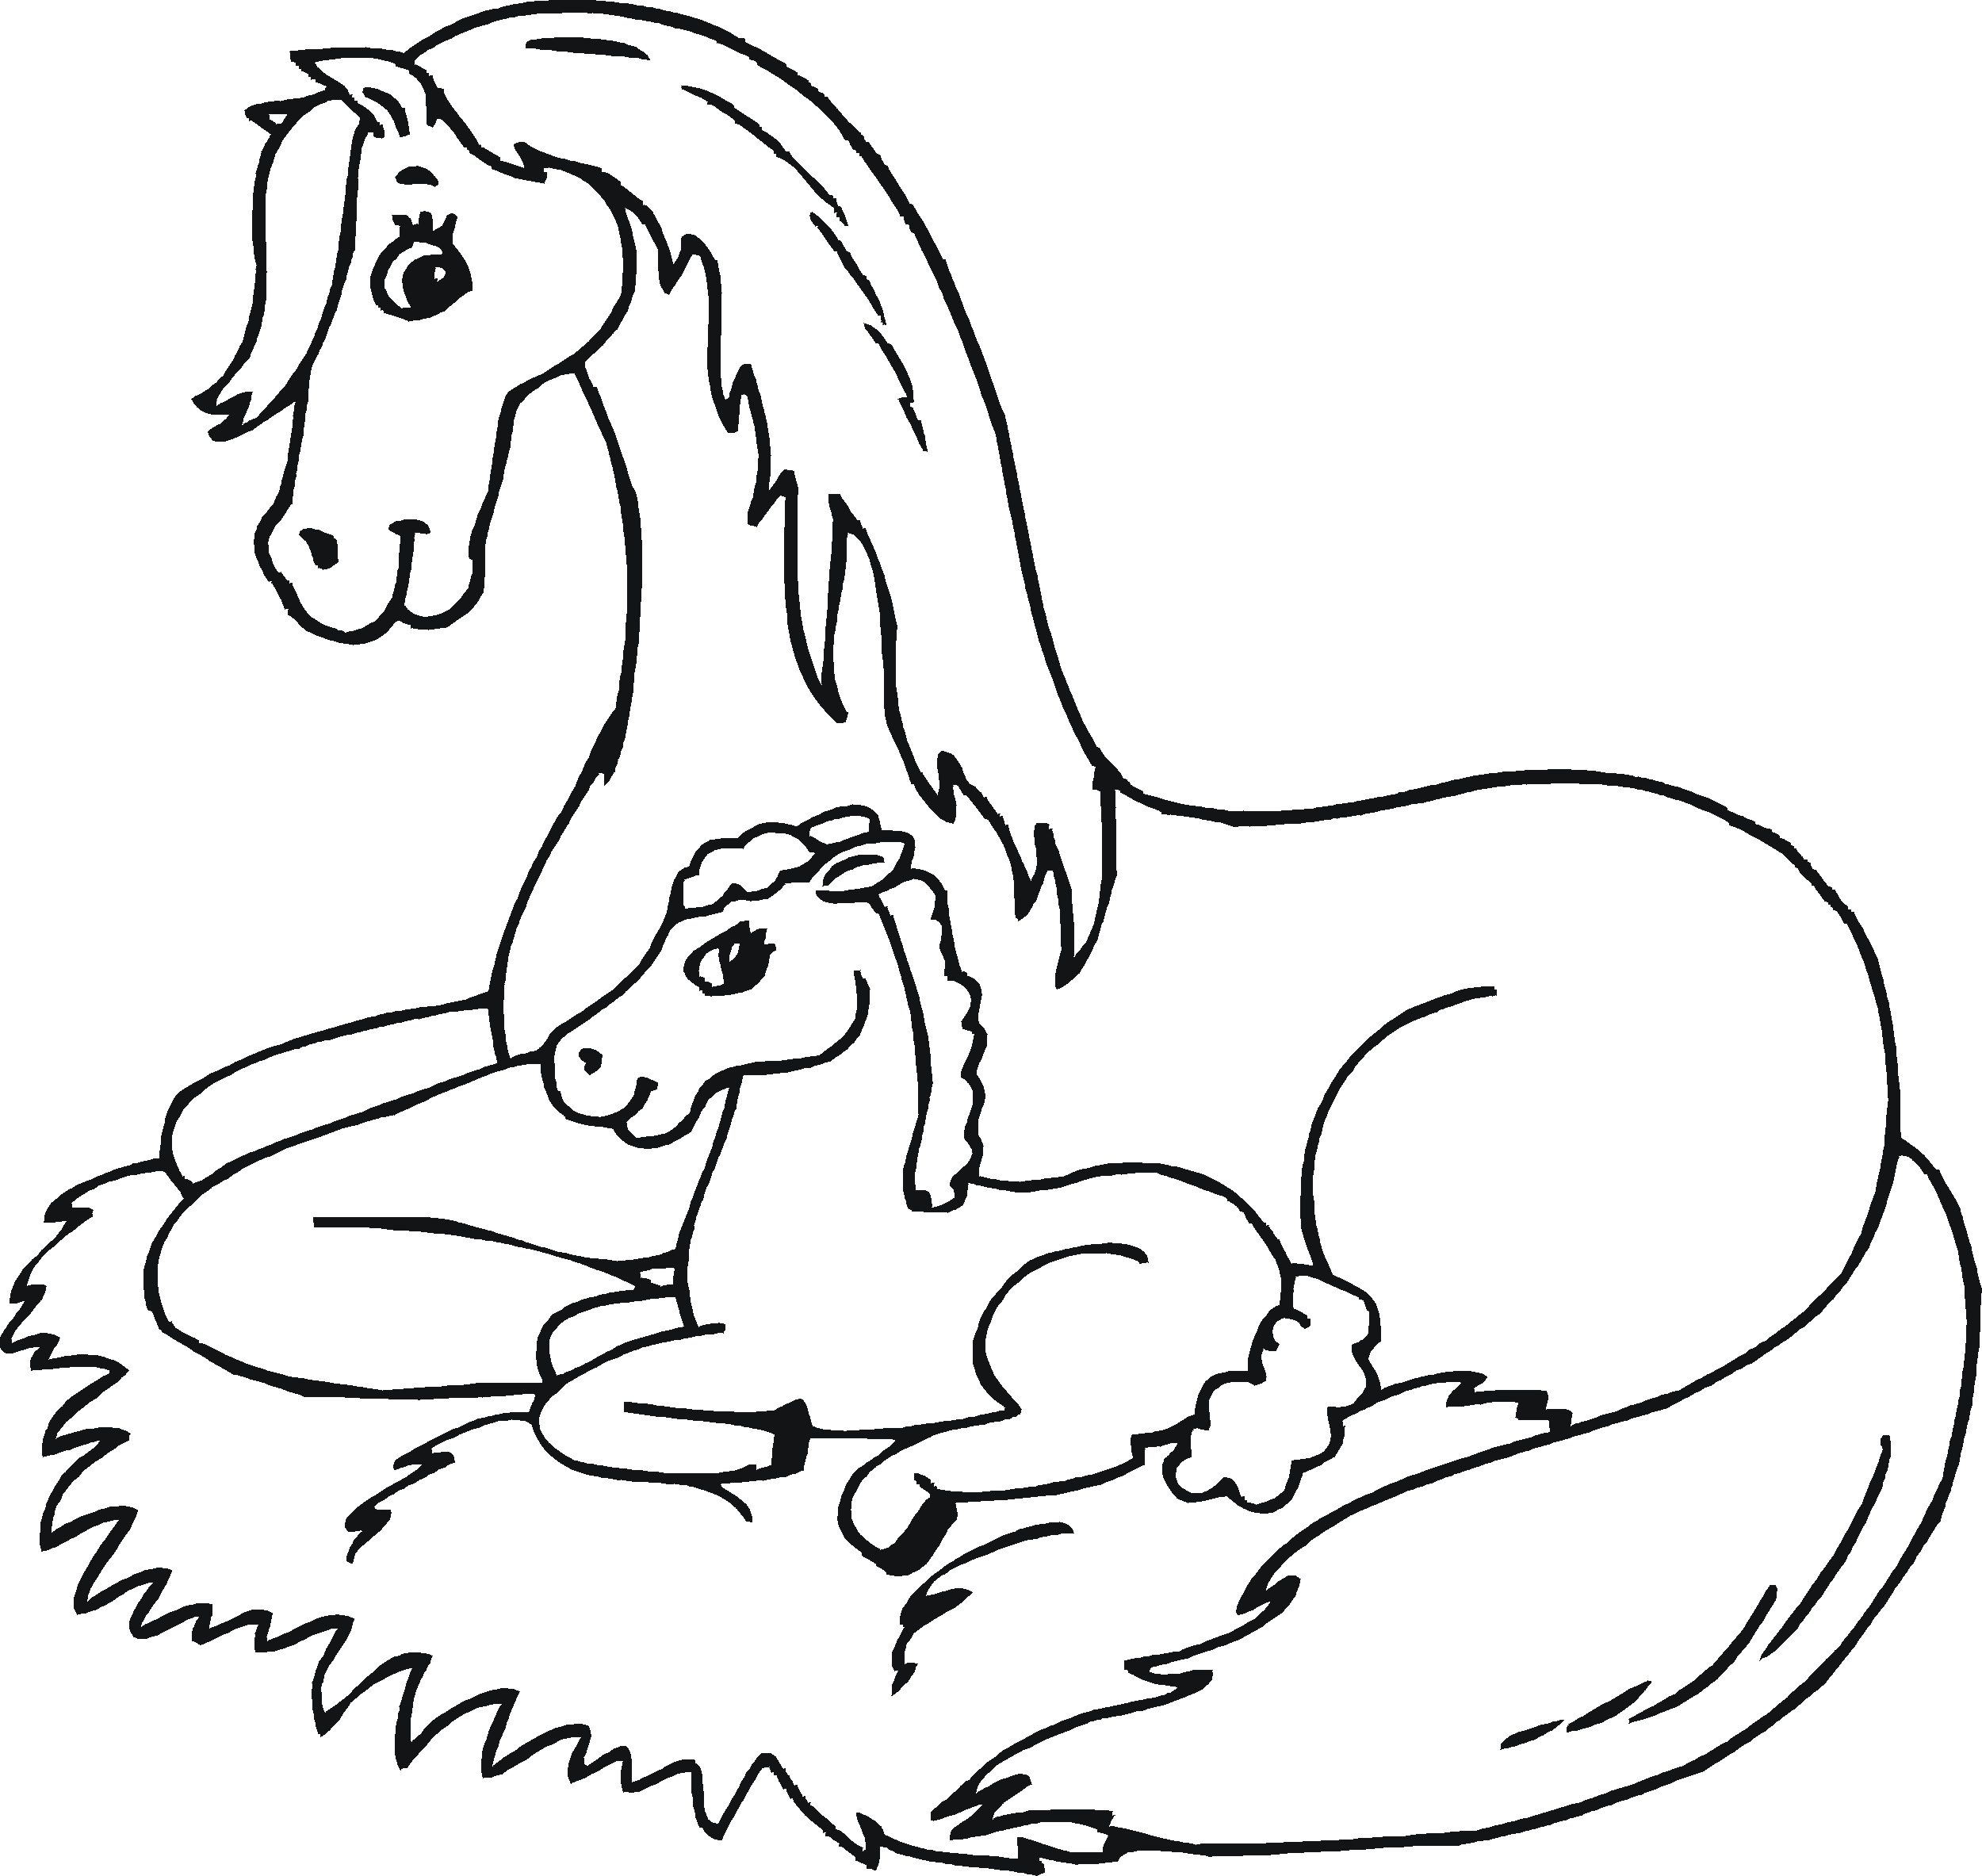 coloring pages of a horse free horse coloring pages coloring a pages horse of